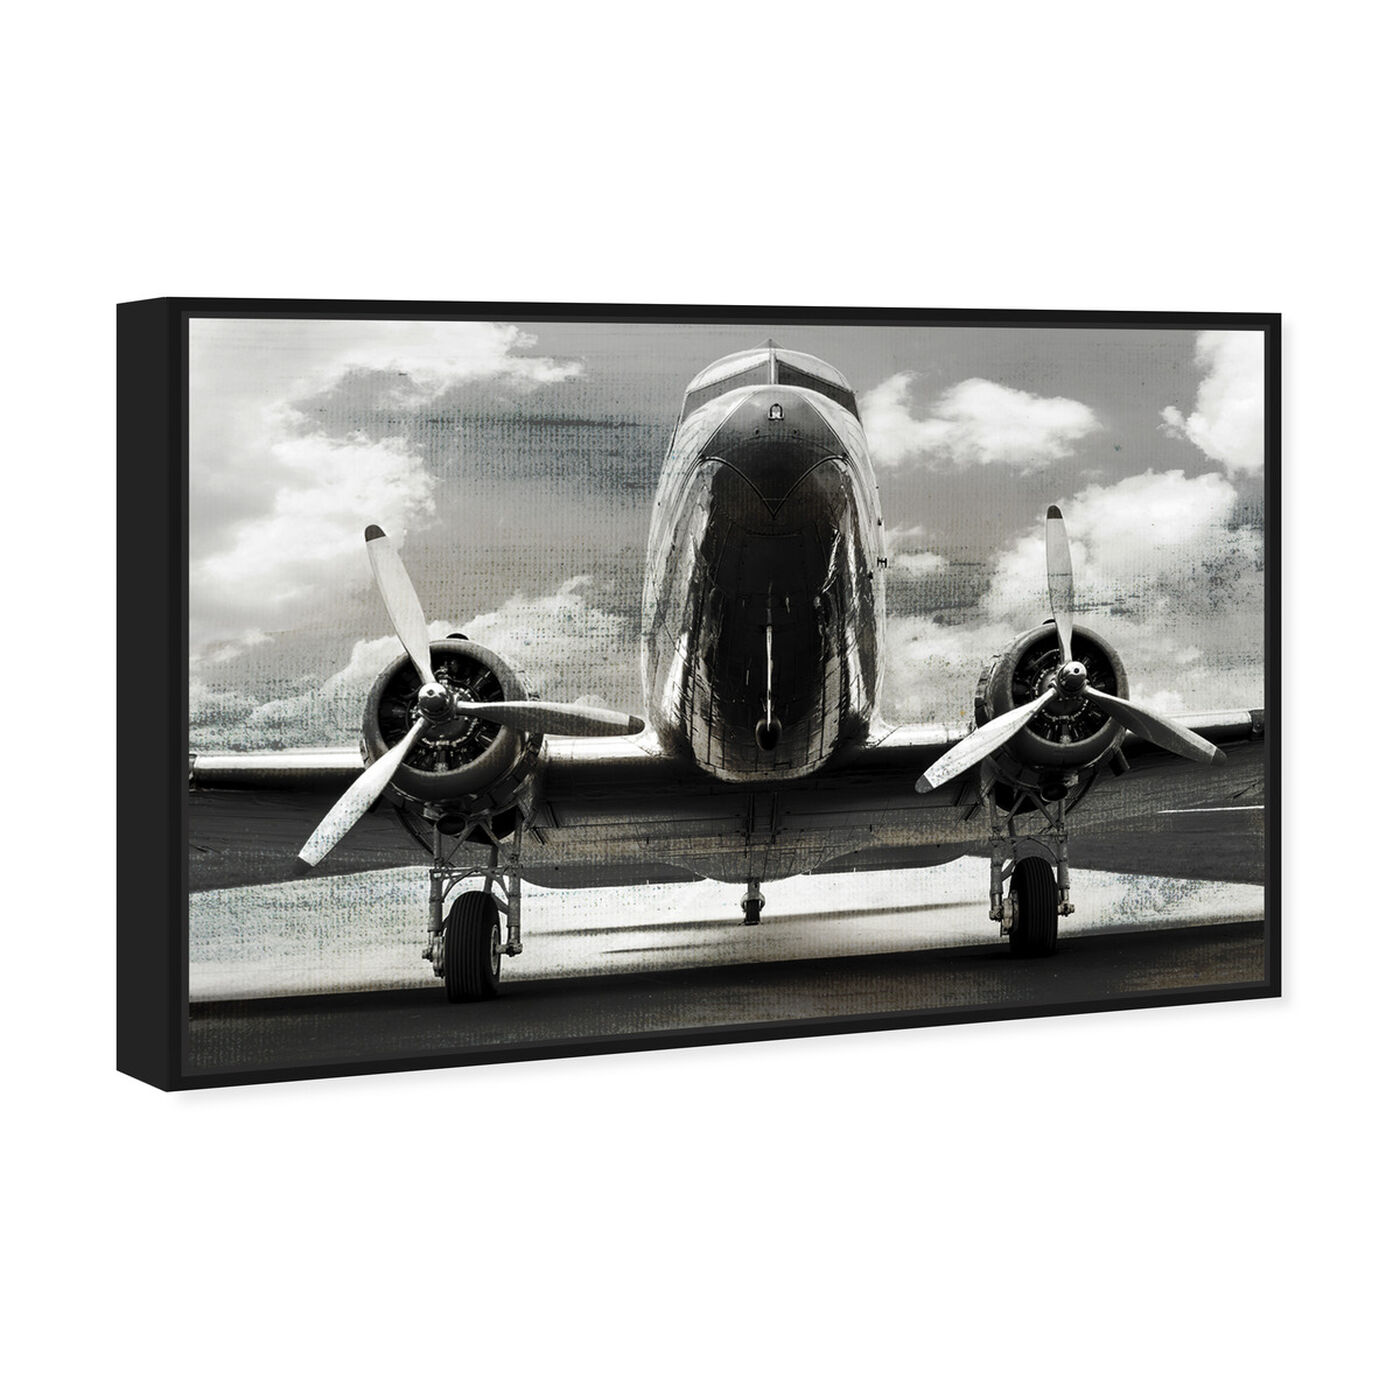 Angled view of SAI - AEROPLANO featuring transportation and airplanes art.